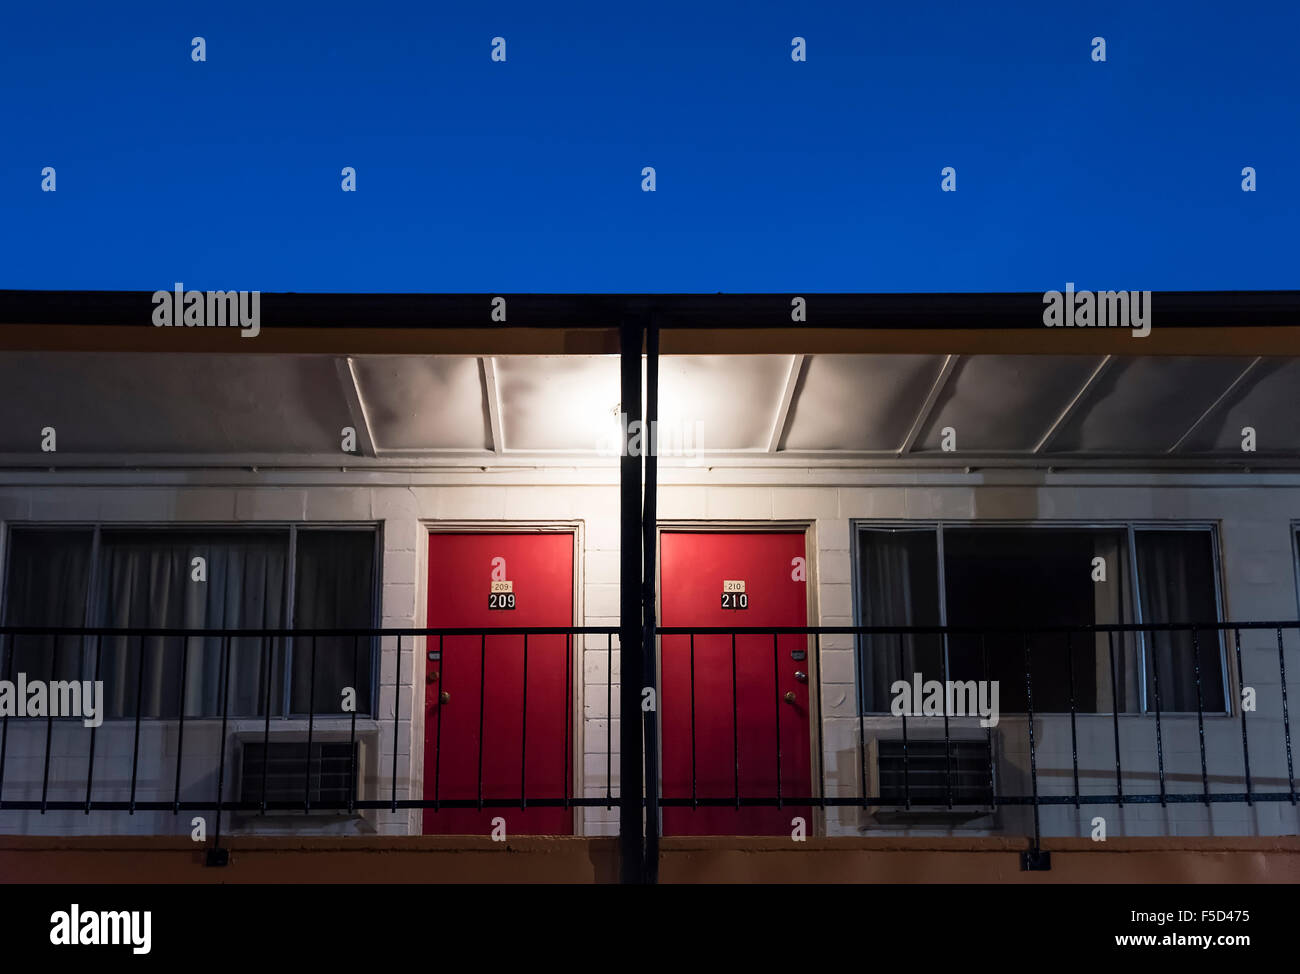 Cheap motel room doors. - Stock Image